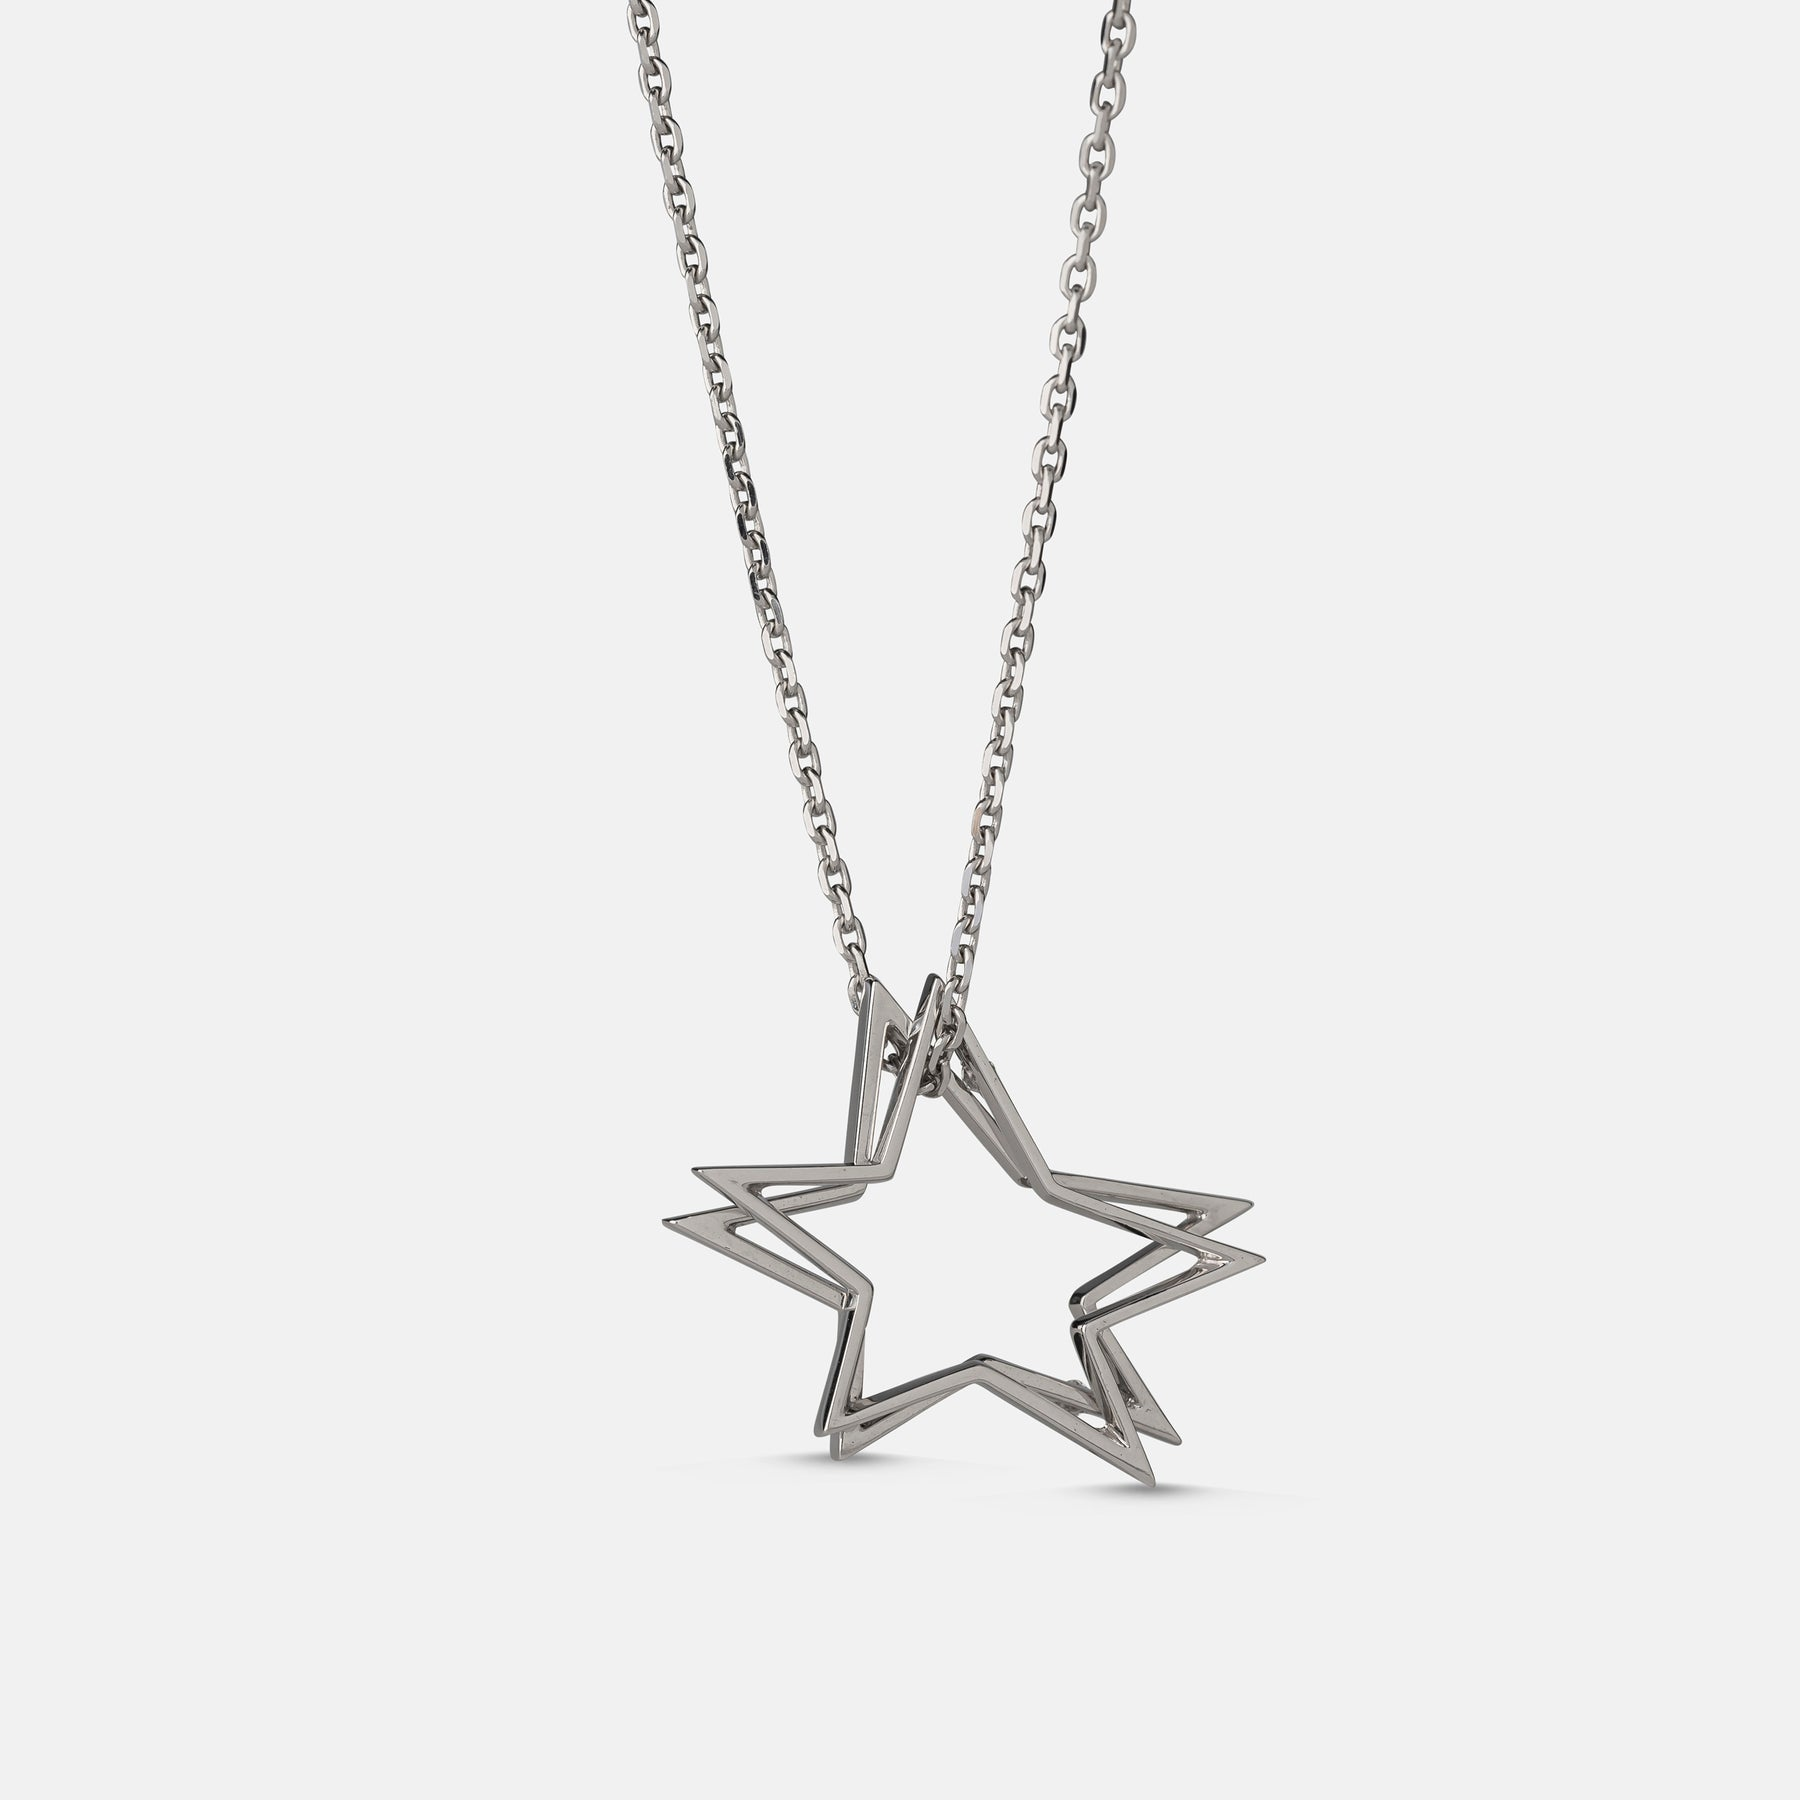 0.03ct Double Star Pendant,<br> 18ct White Gold Chain